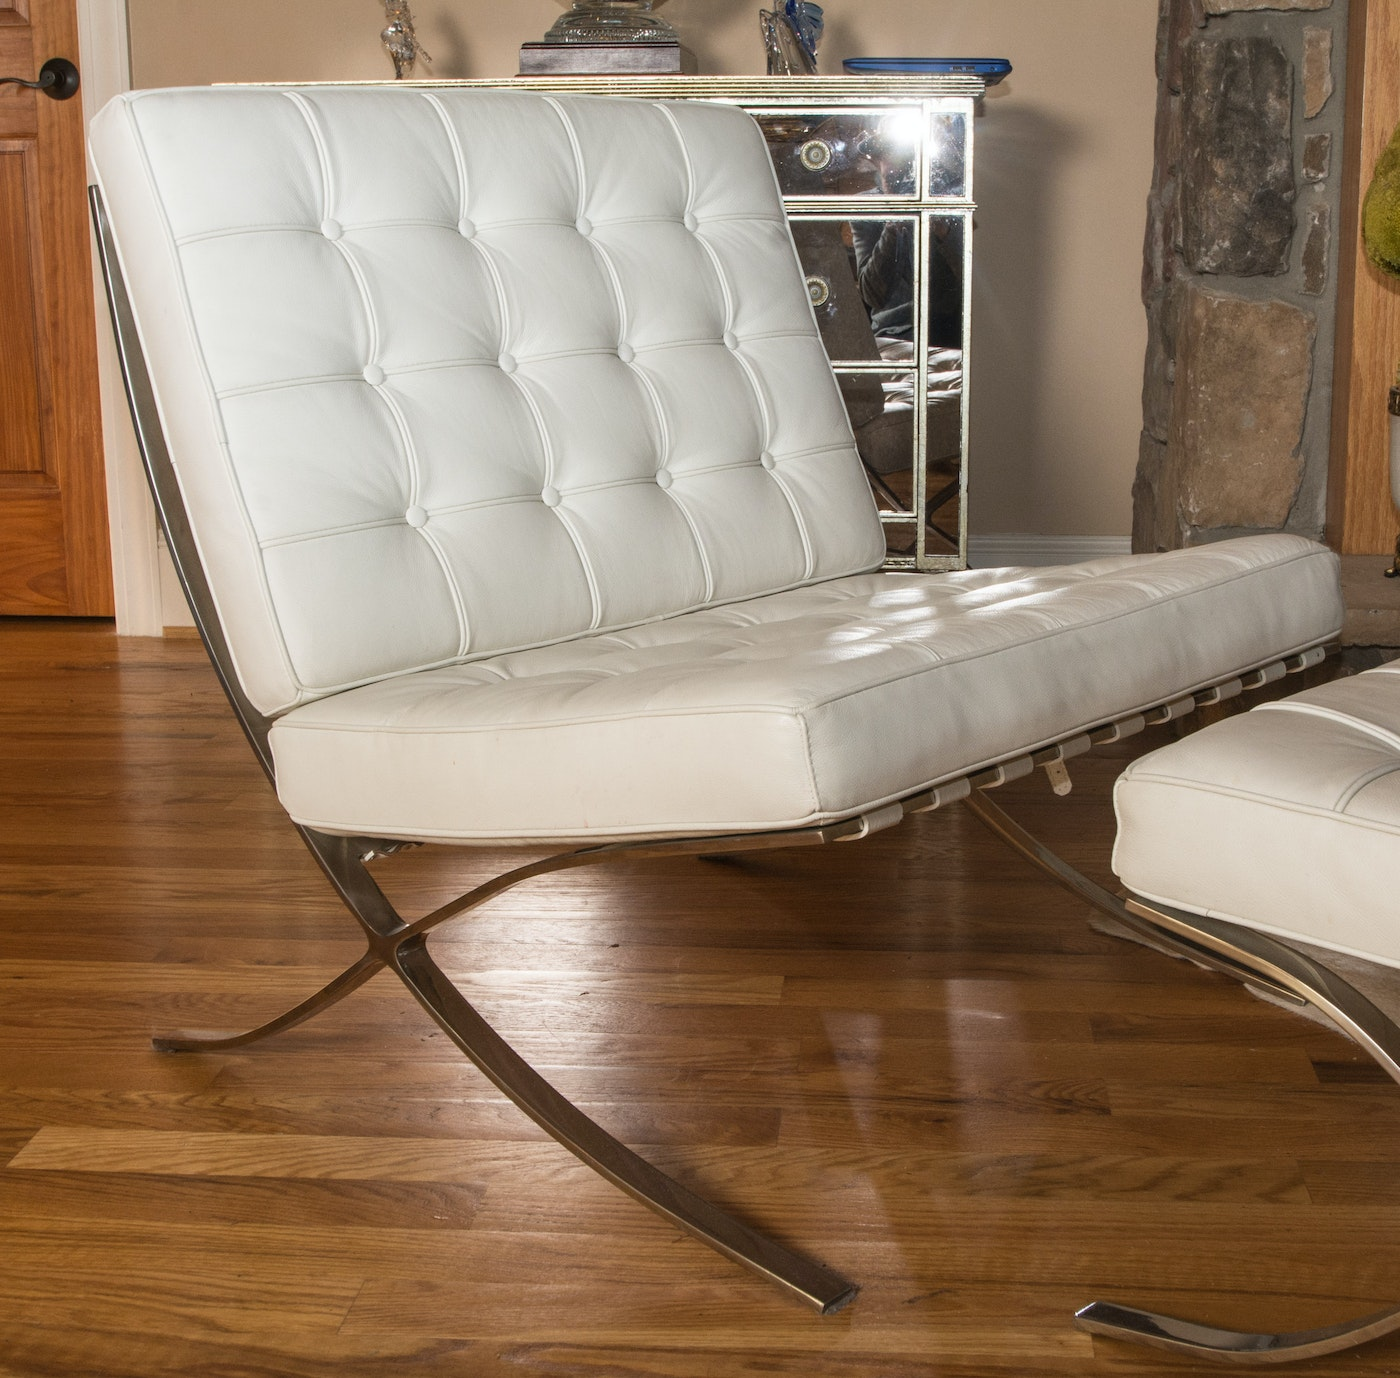 Barcelona Style Off-White Leather Chair With Ottoman : EBTH